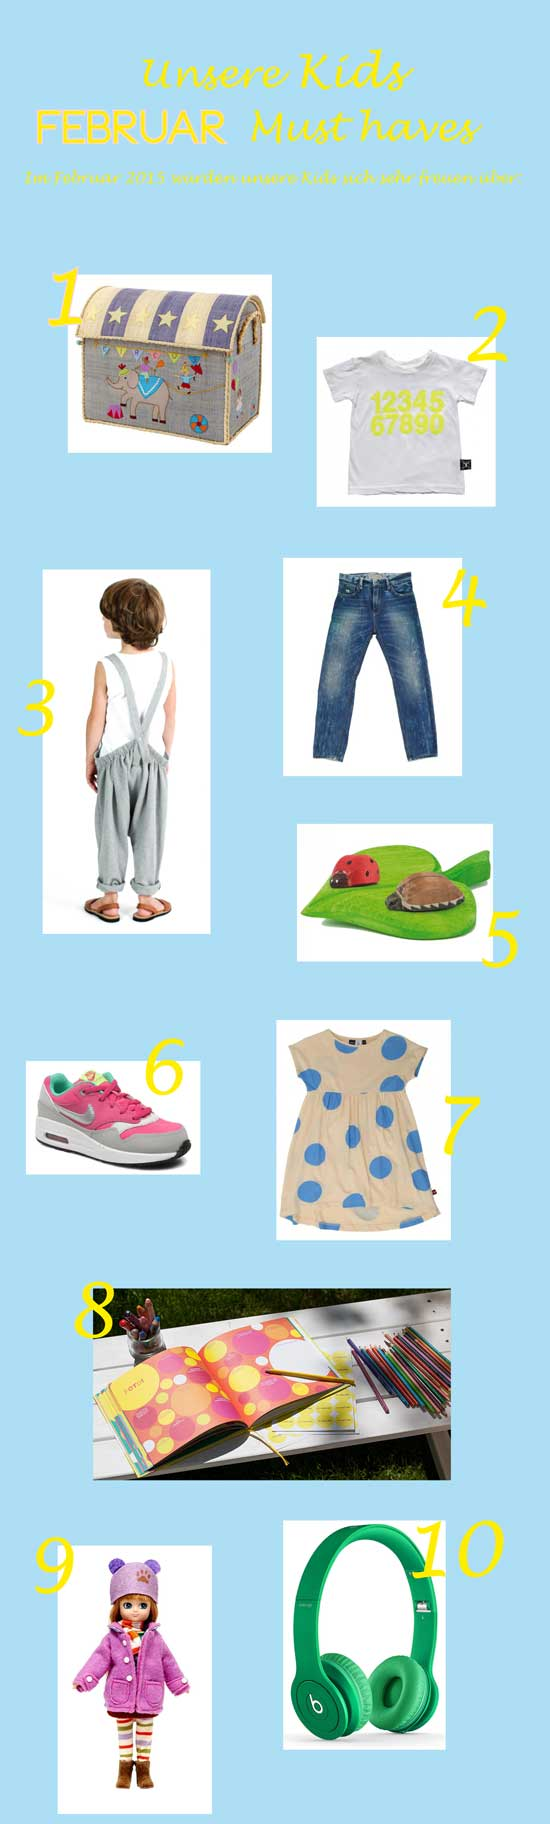 Februar-Must-haves-2015-Kids